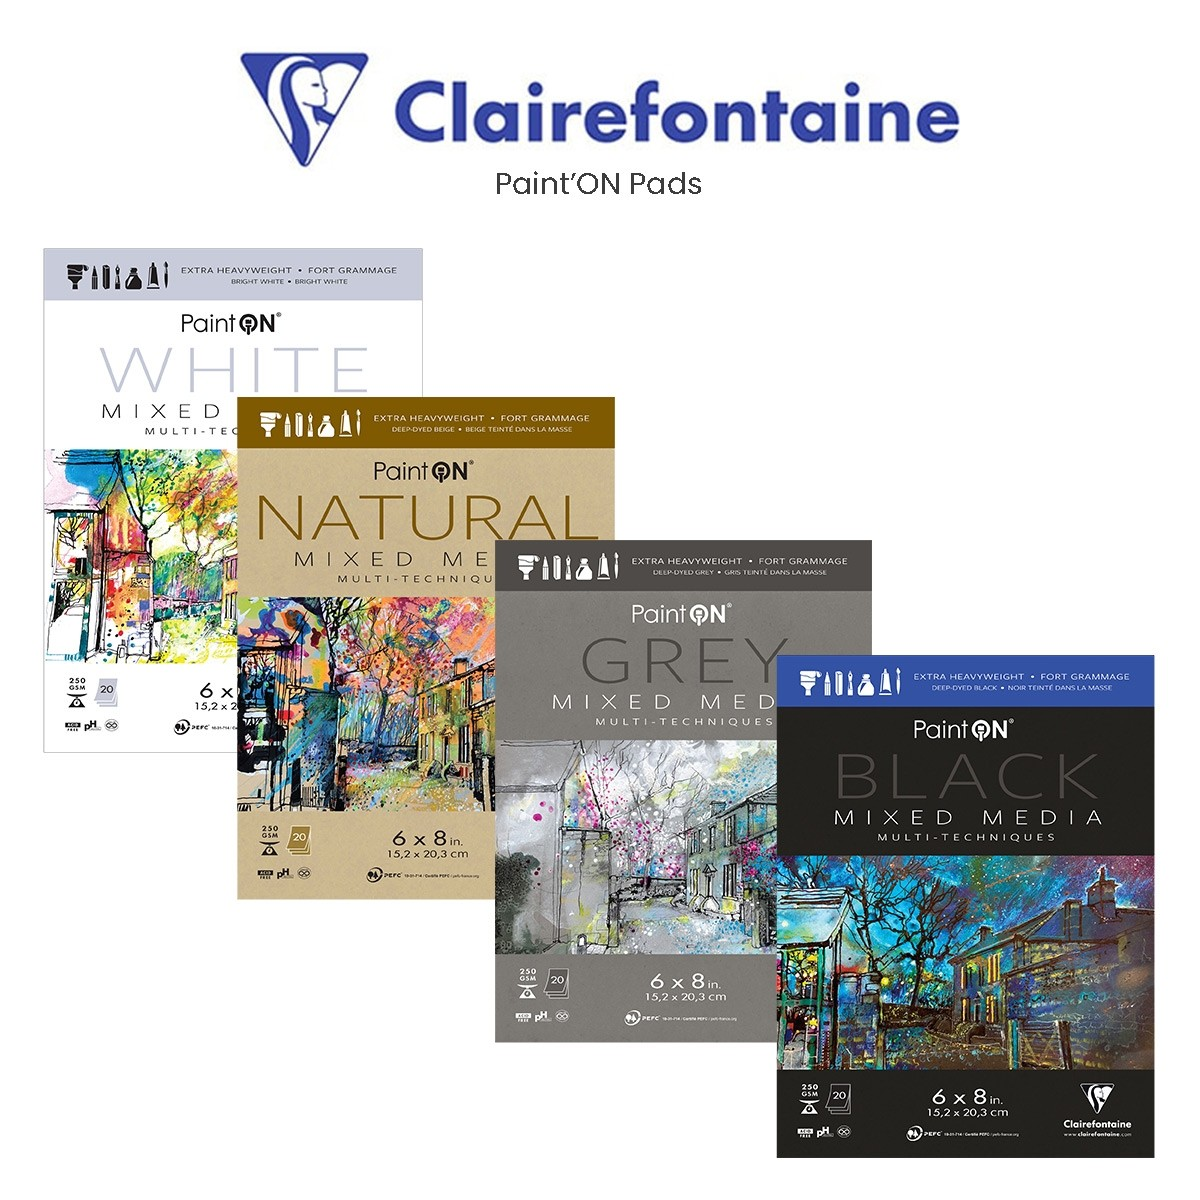 Clairefontaine Paint'ON Pads